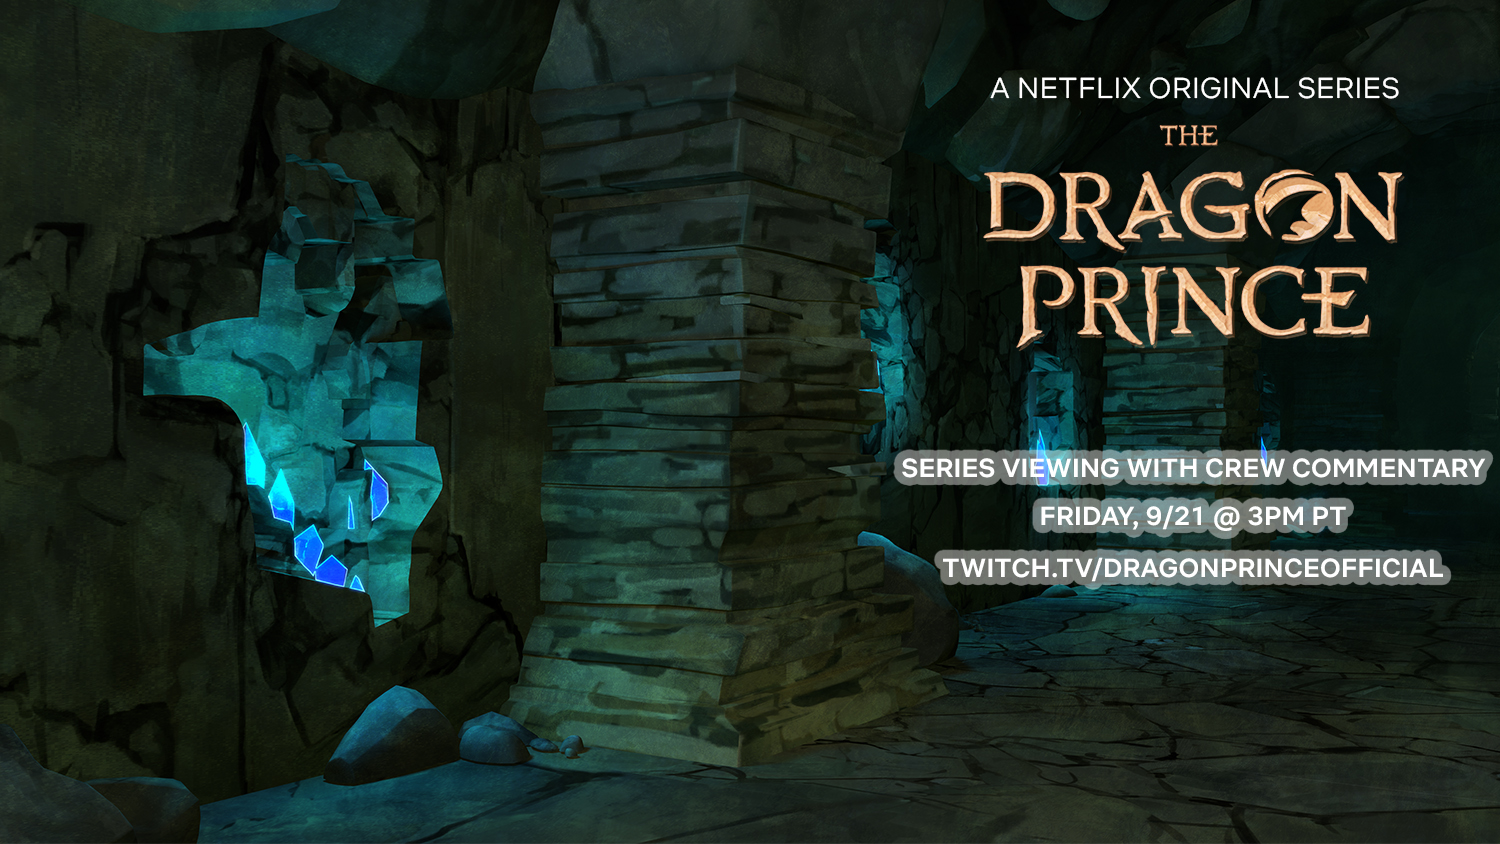 The Dragon Prince Viewing with Live Commentary